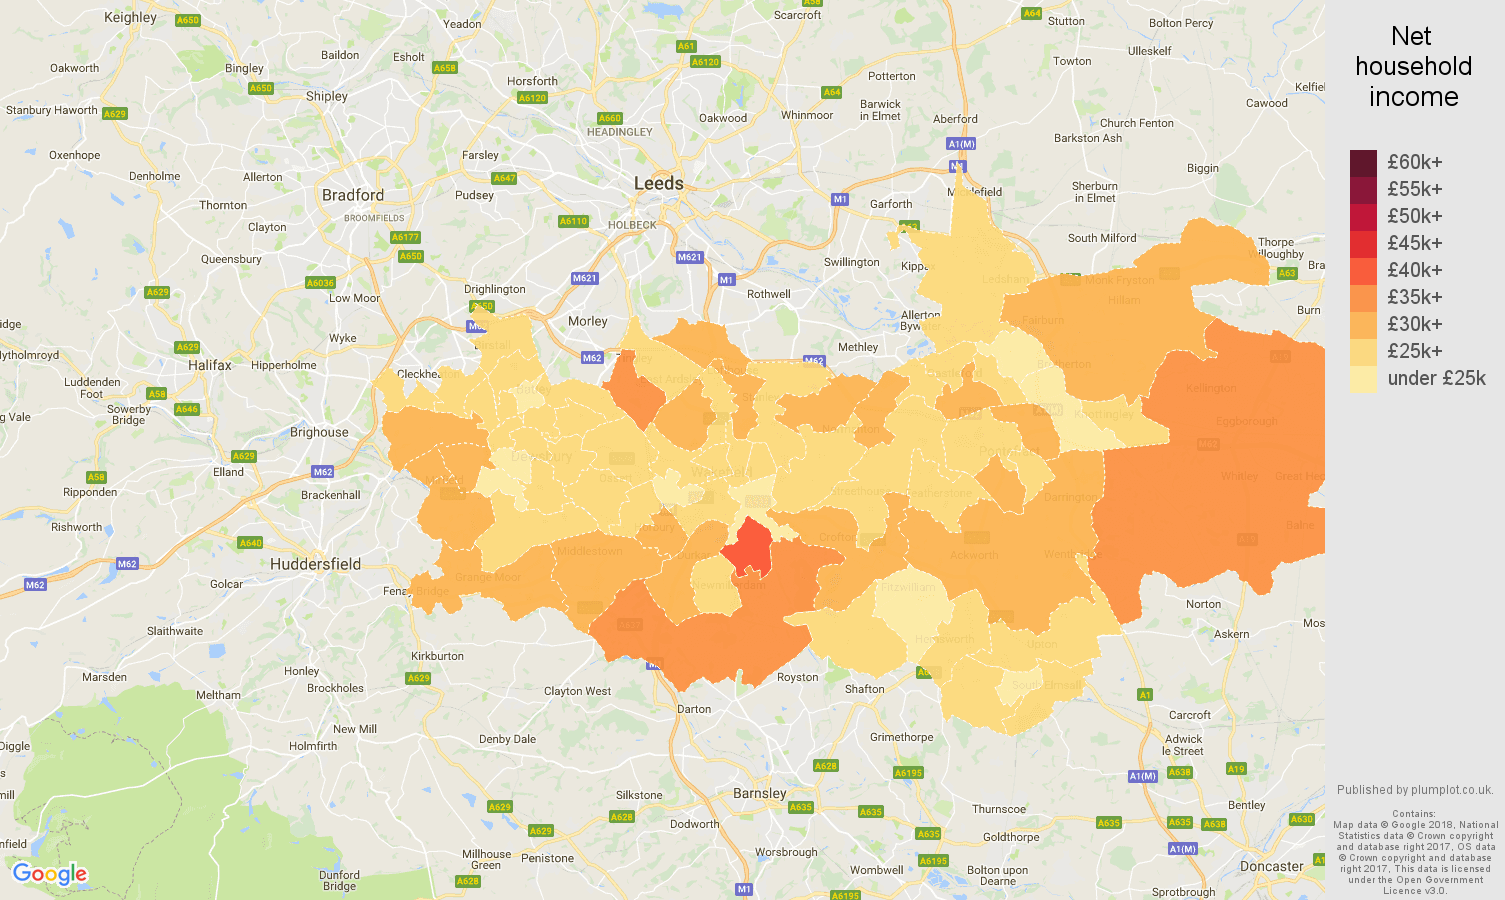 Wakefield net household income map